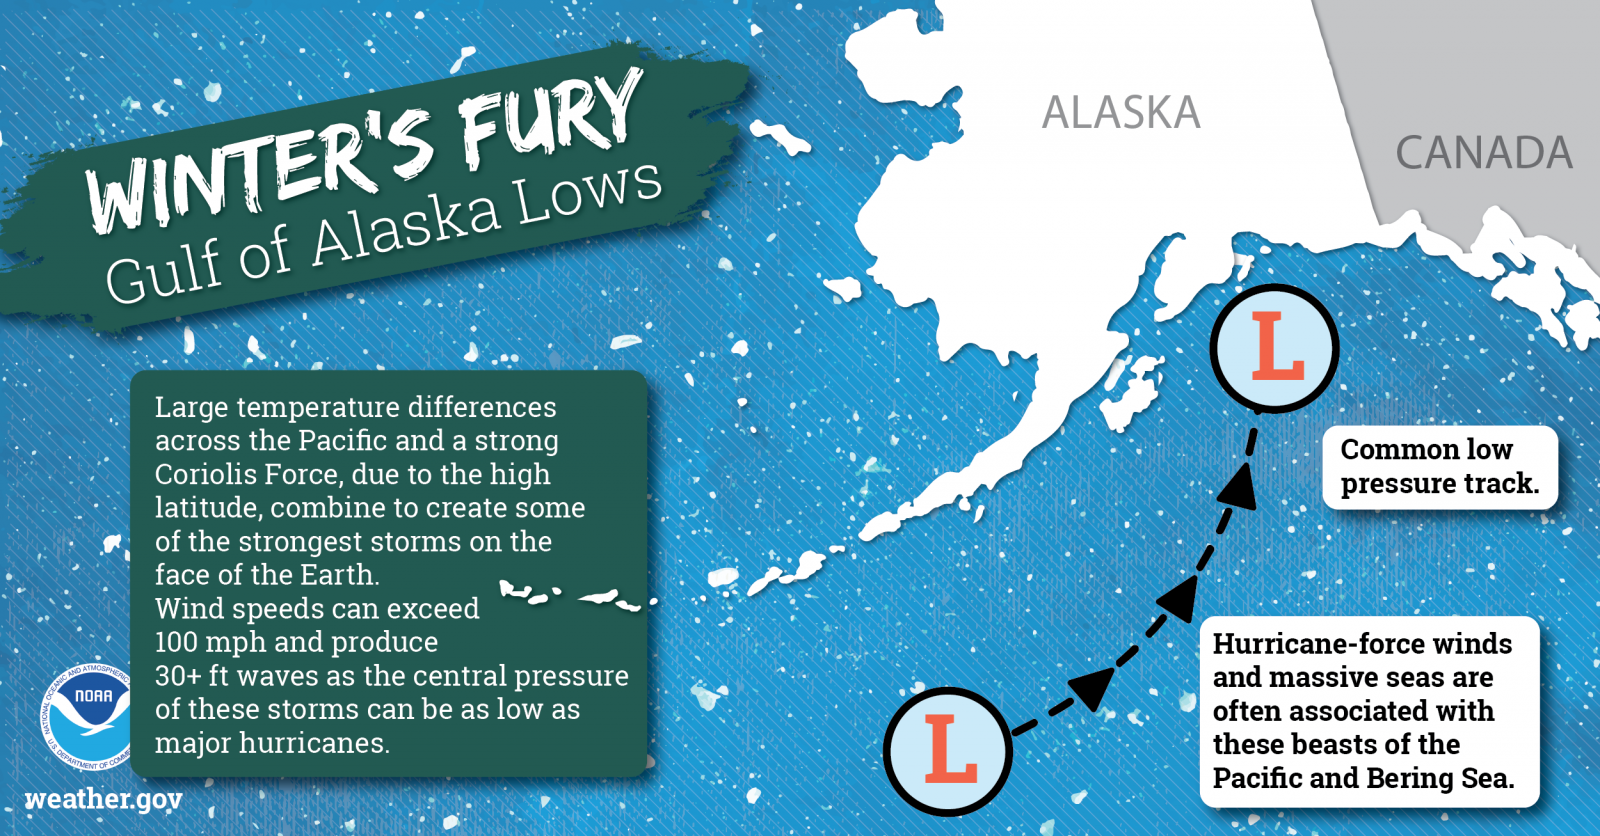 Winter's Fury - Gulf of Alaska Lows: Large temperature differences across the Pacific and strong Coriolis Force, due to the high latitude, combine to create some of the strongest storms on the face of the Earth. Wind speeds can exceed 100 mph and produce 30+ ft waves as the central pressure of these storms can be as low as major hurricanes.